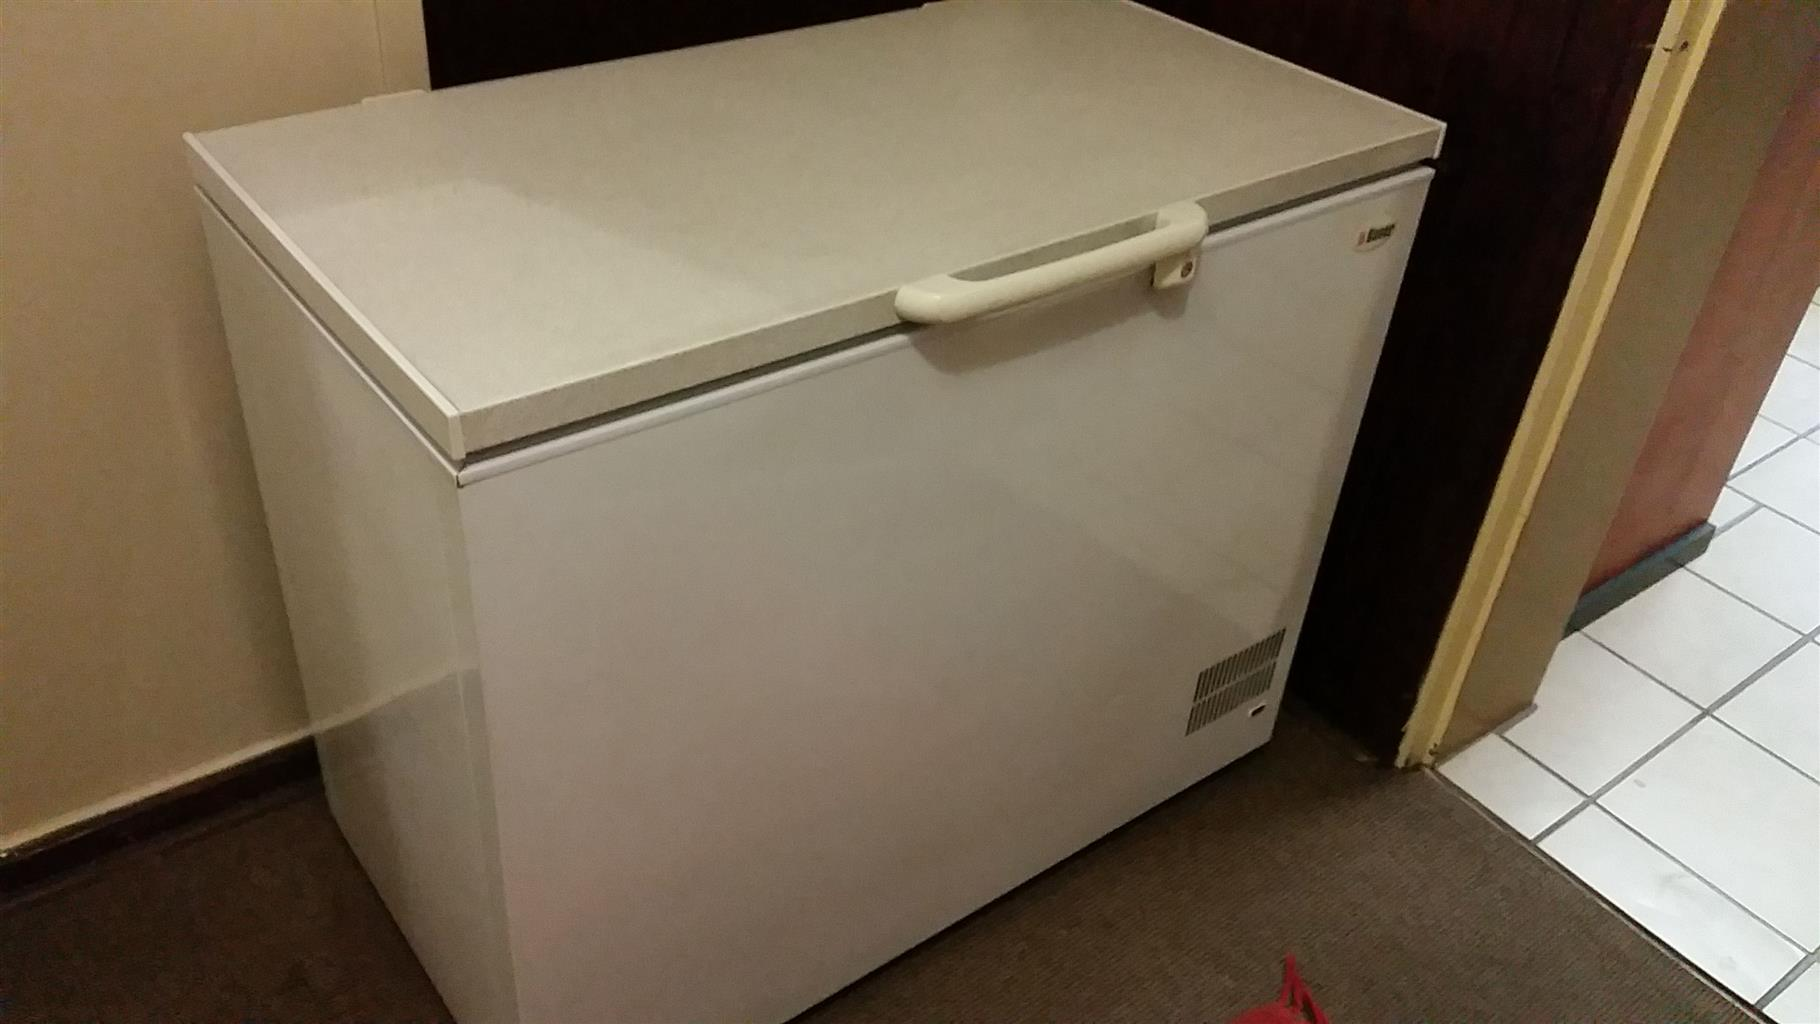 310 Litre Chest Freezer in very good condition.